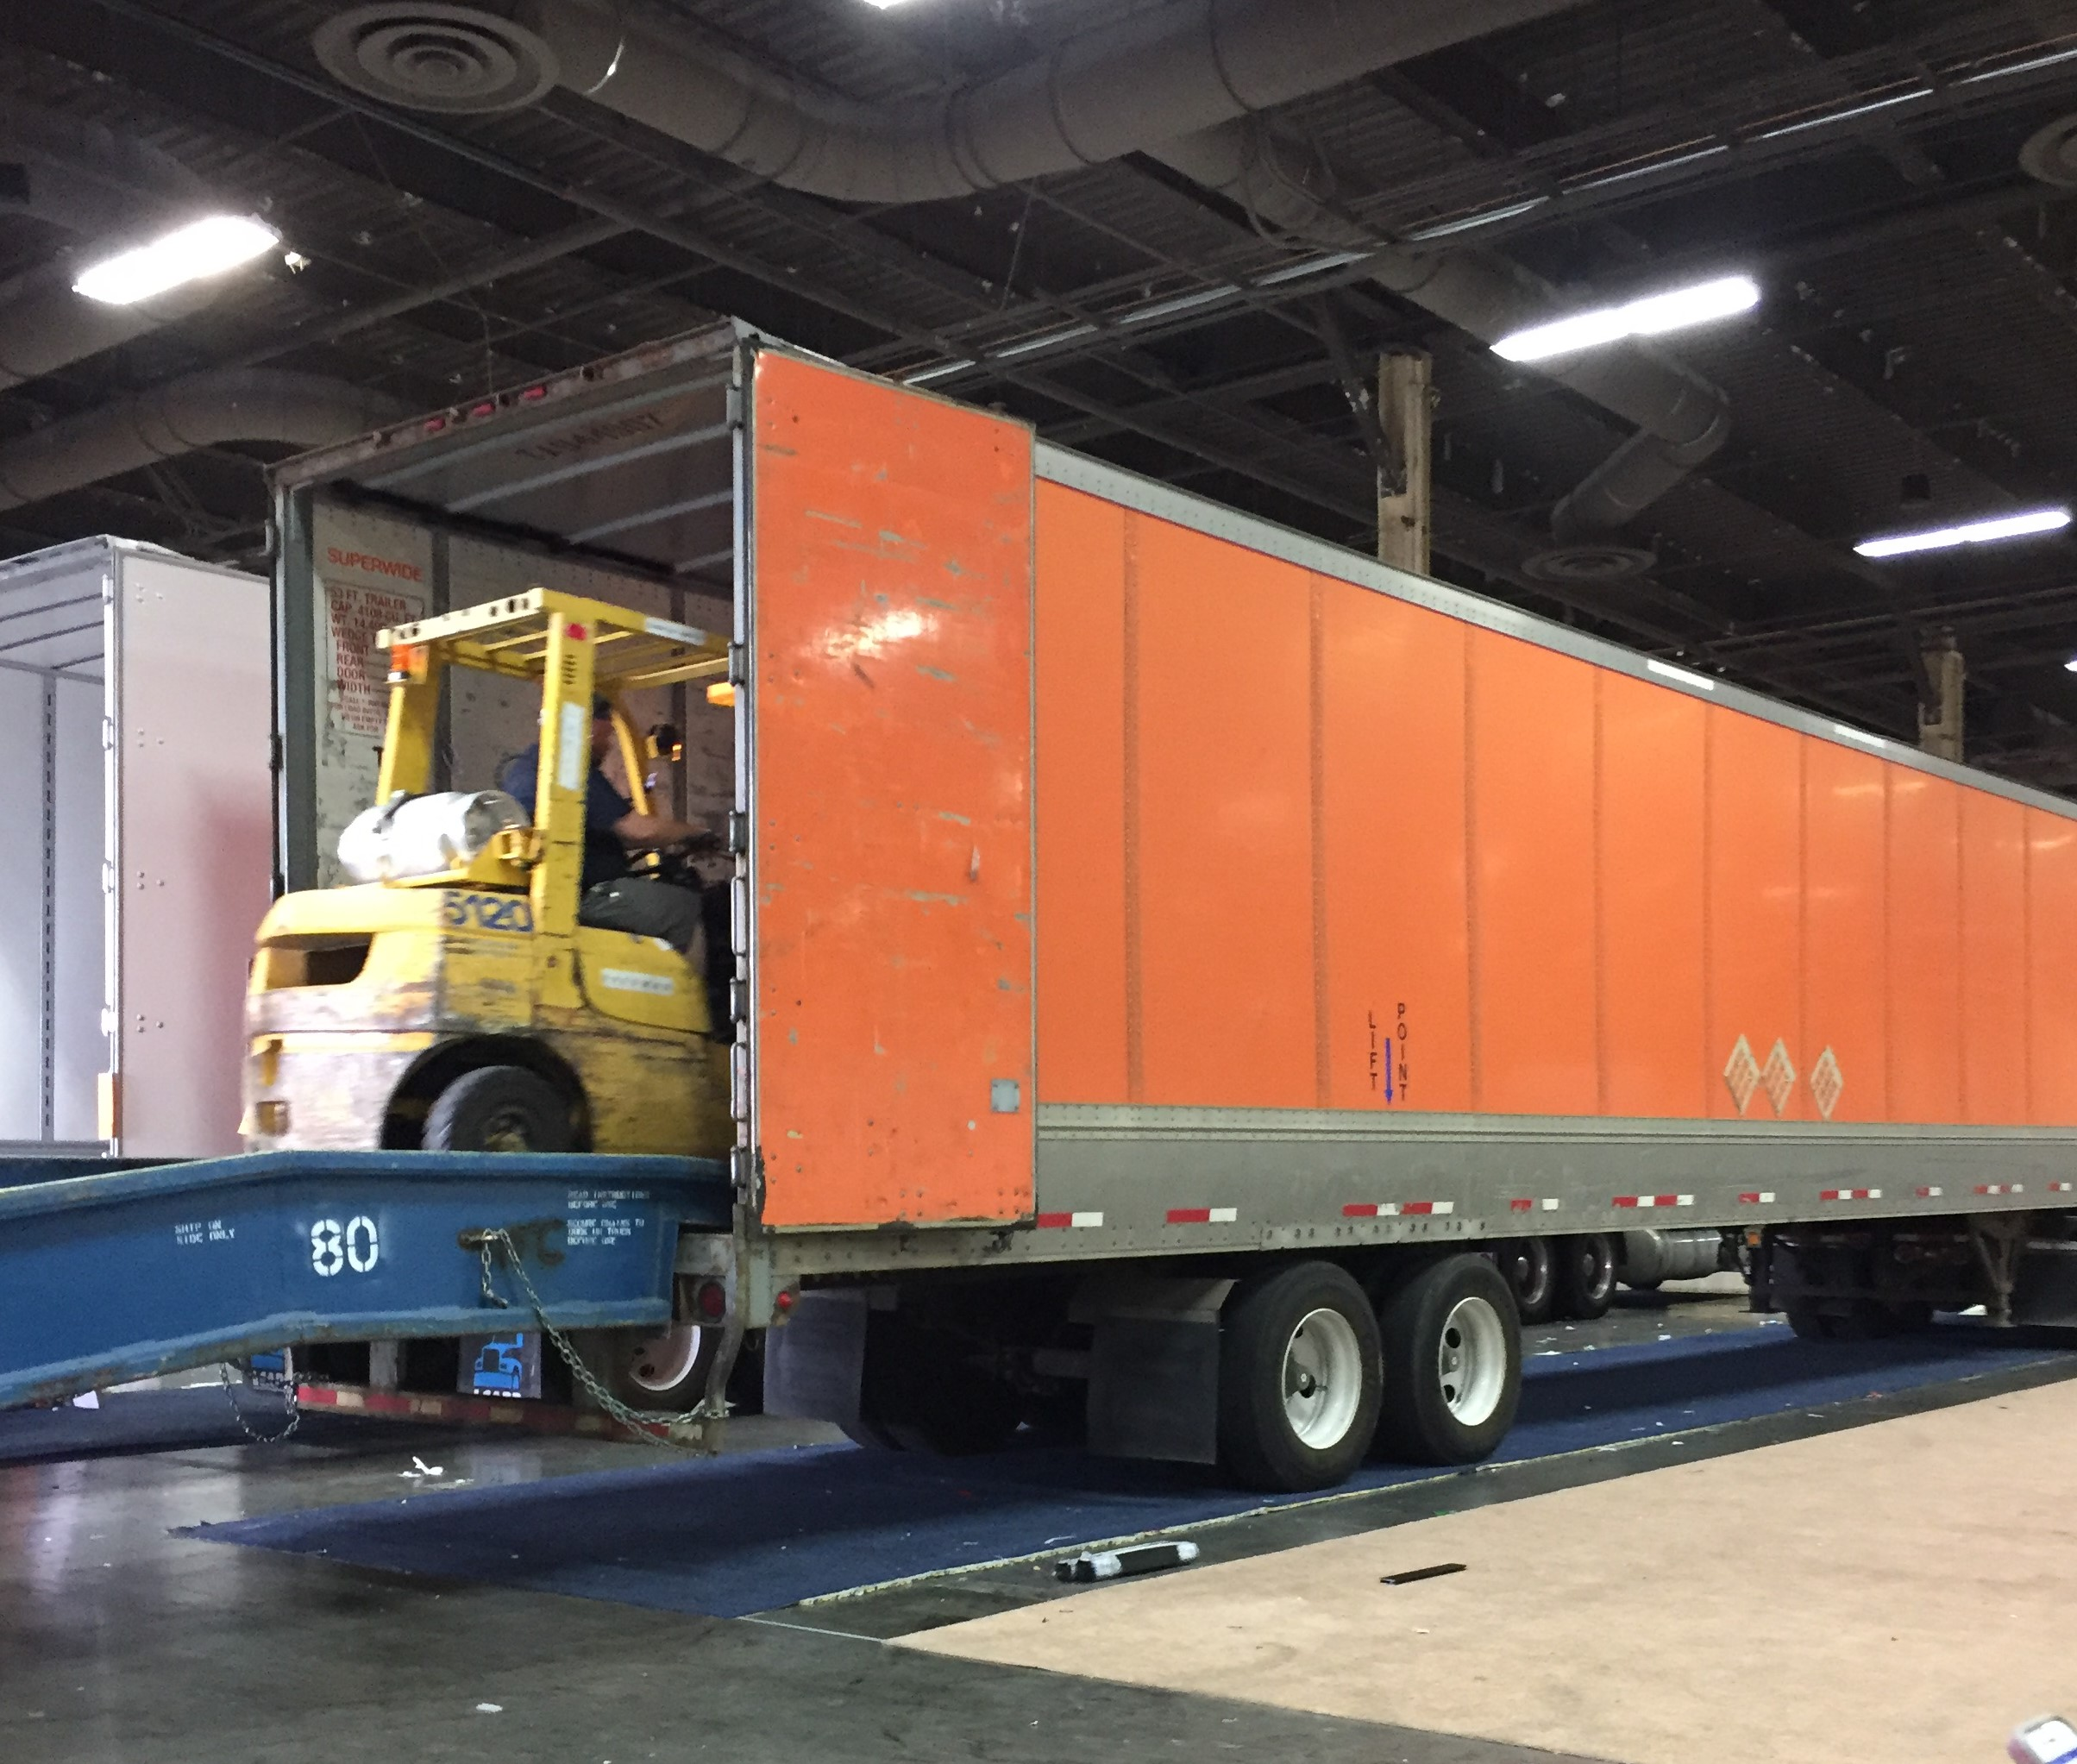 Loading the truck readying the booth for the next trade show or storage